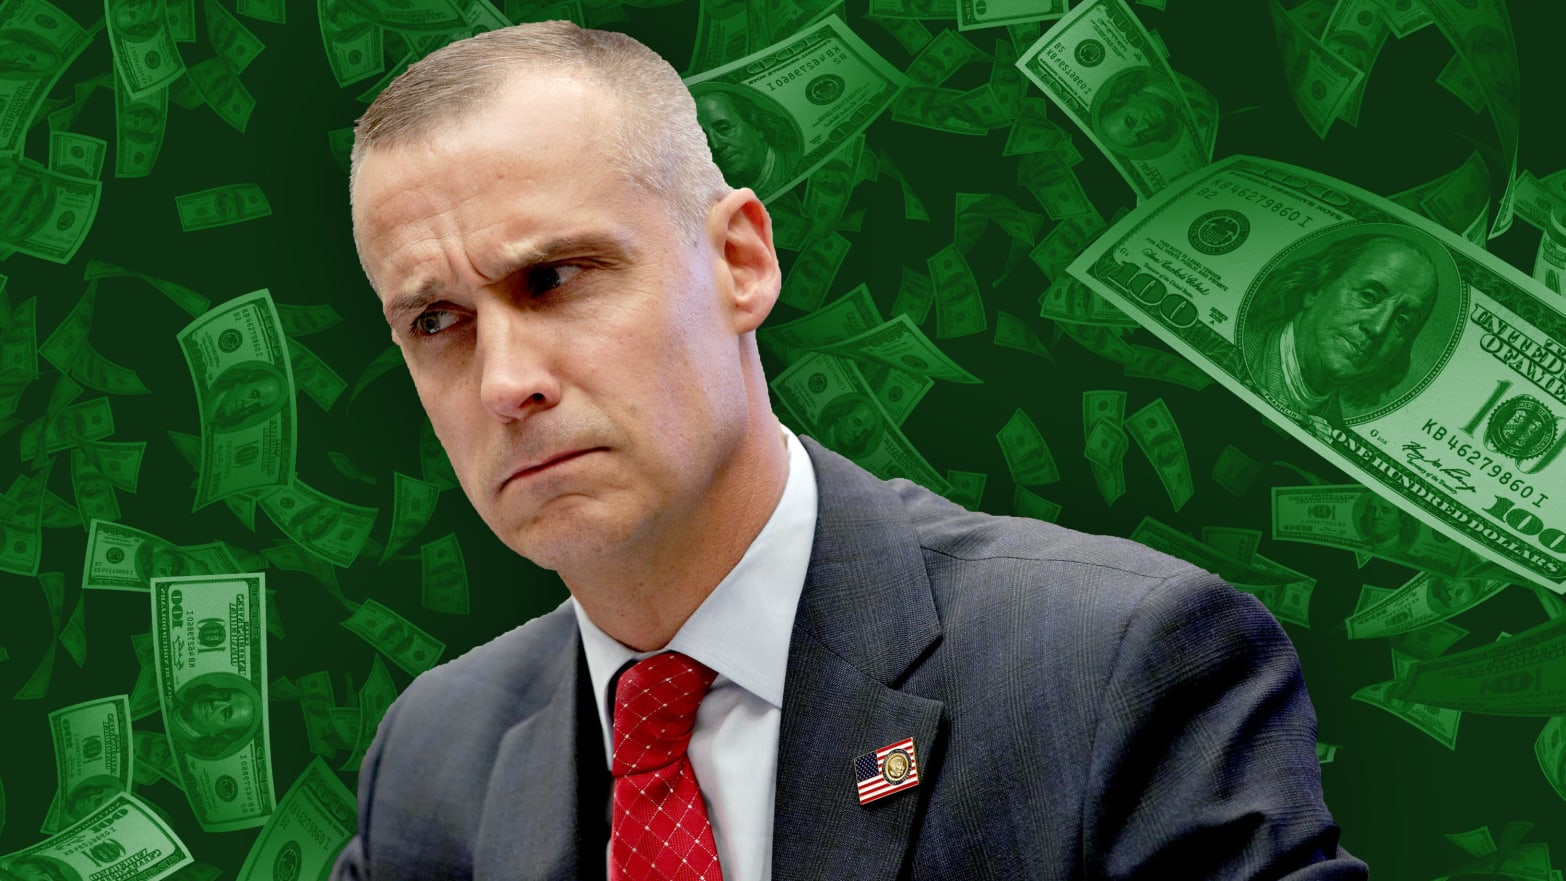 Corey Lewandowski and His Money Men Can't Get Their Stories Straight